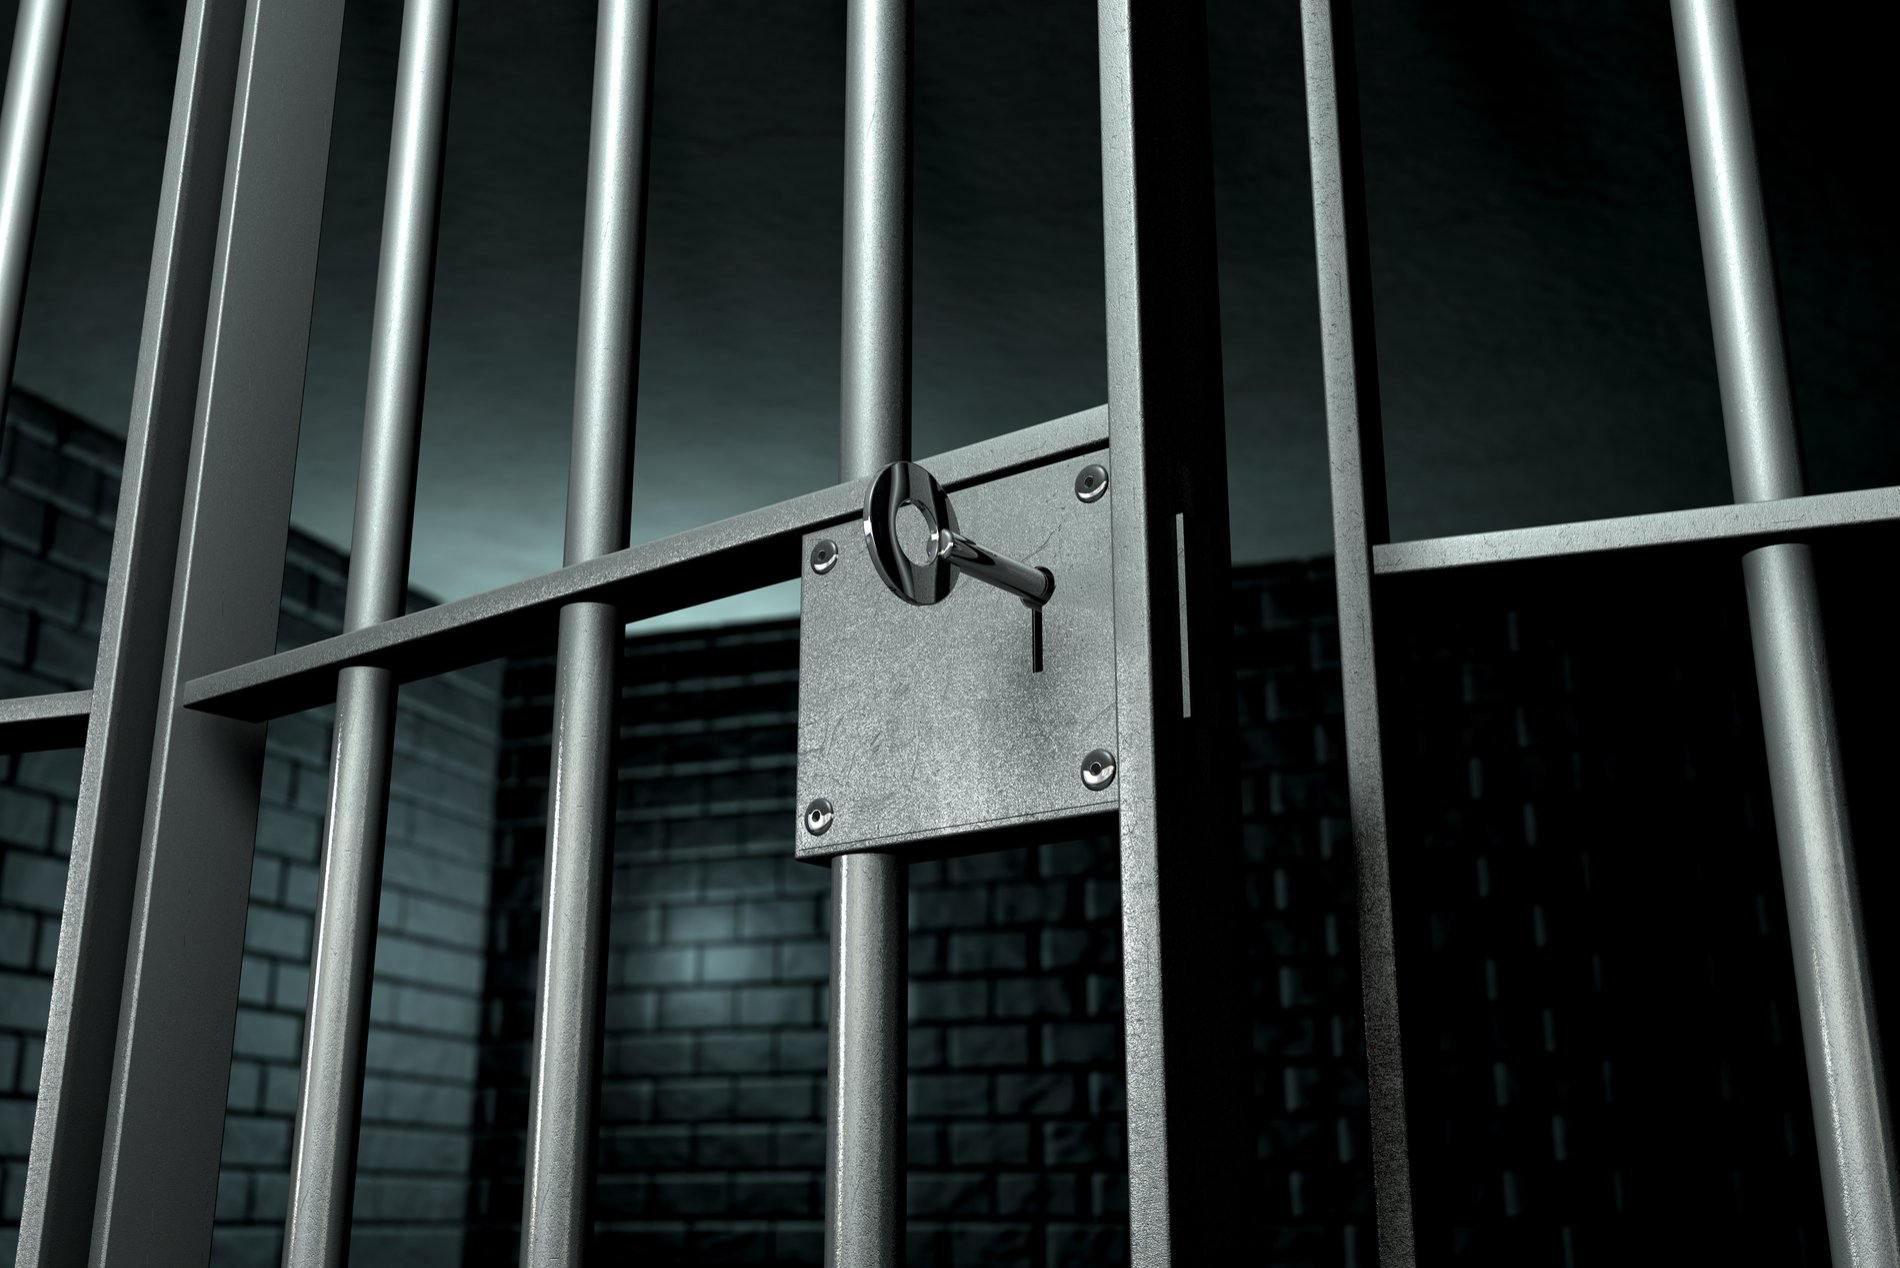 Detroit Bitcoin Trader Gets Jail Time for Unlicensed Money Business